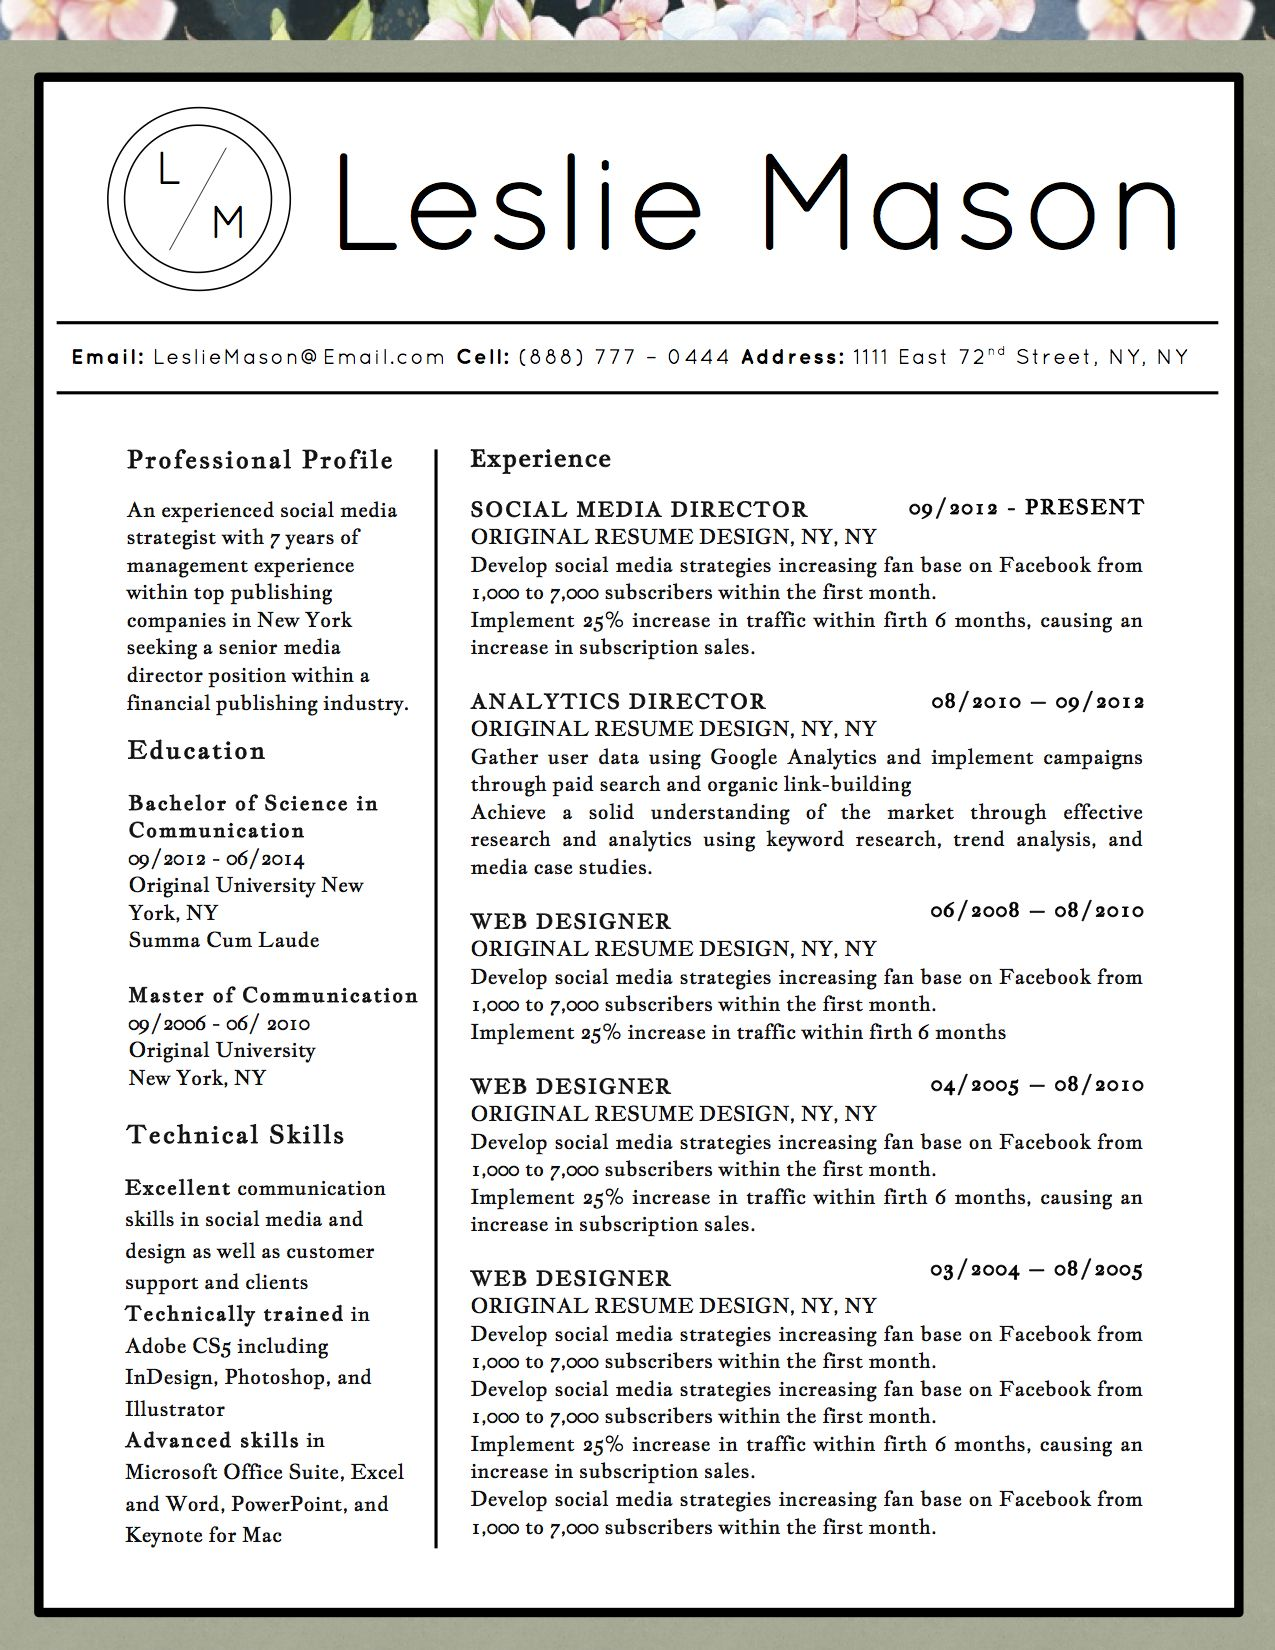 beautiful resume template for microsoft word distinct beautiful resume template for microsoft word 3 distinct styles and matching cover letters